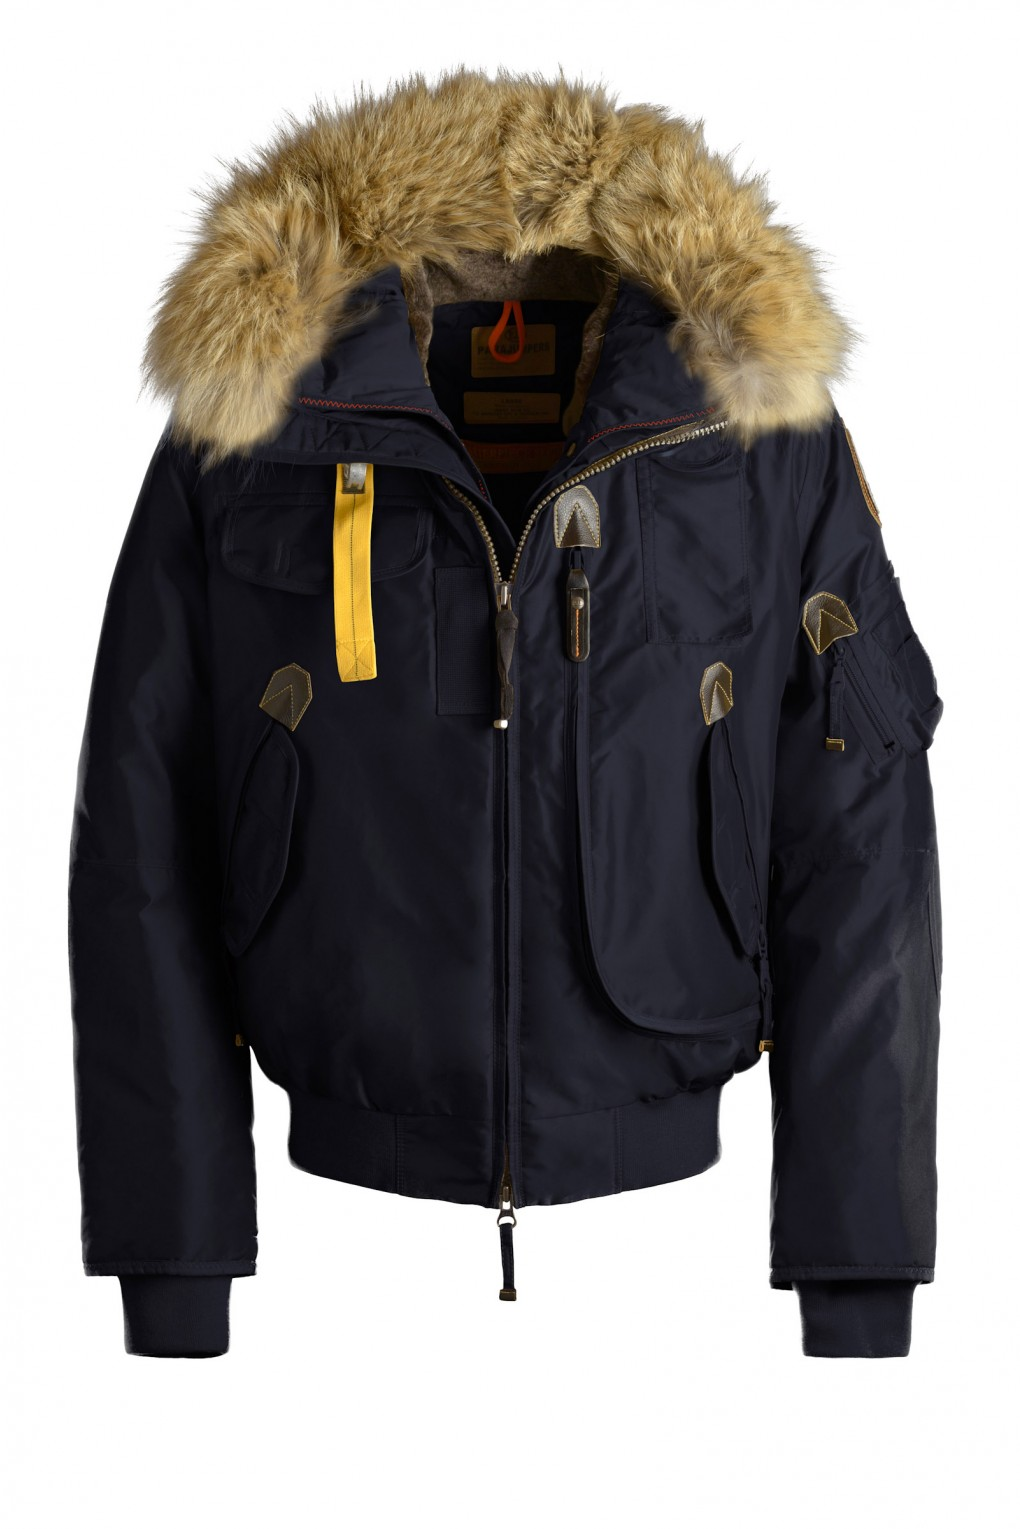 parajumpers GOBI man outerwear Navy